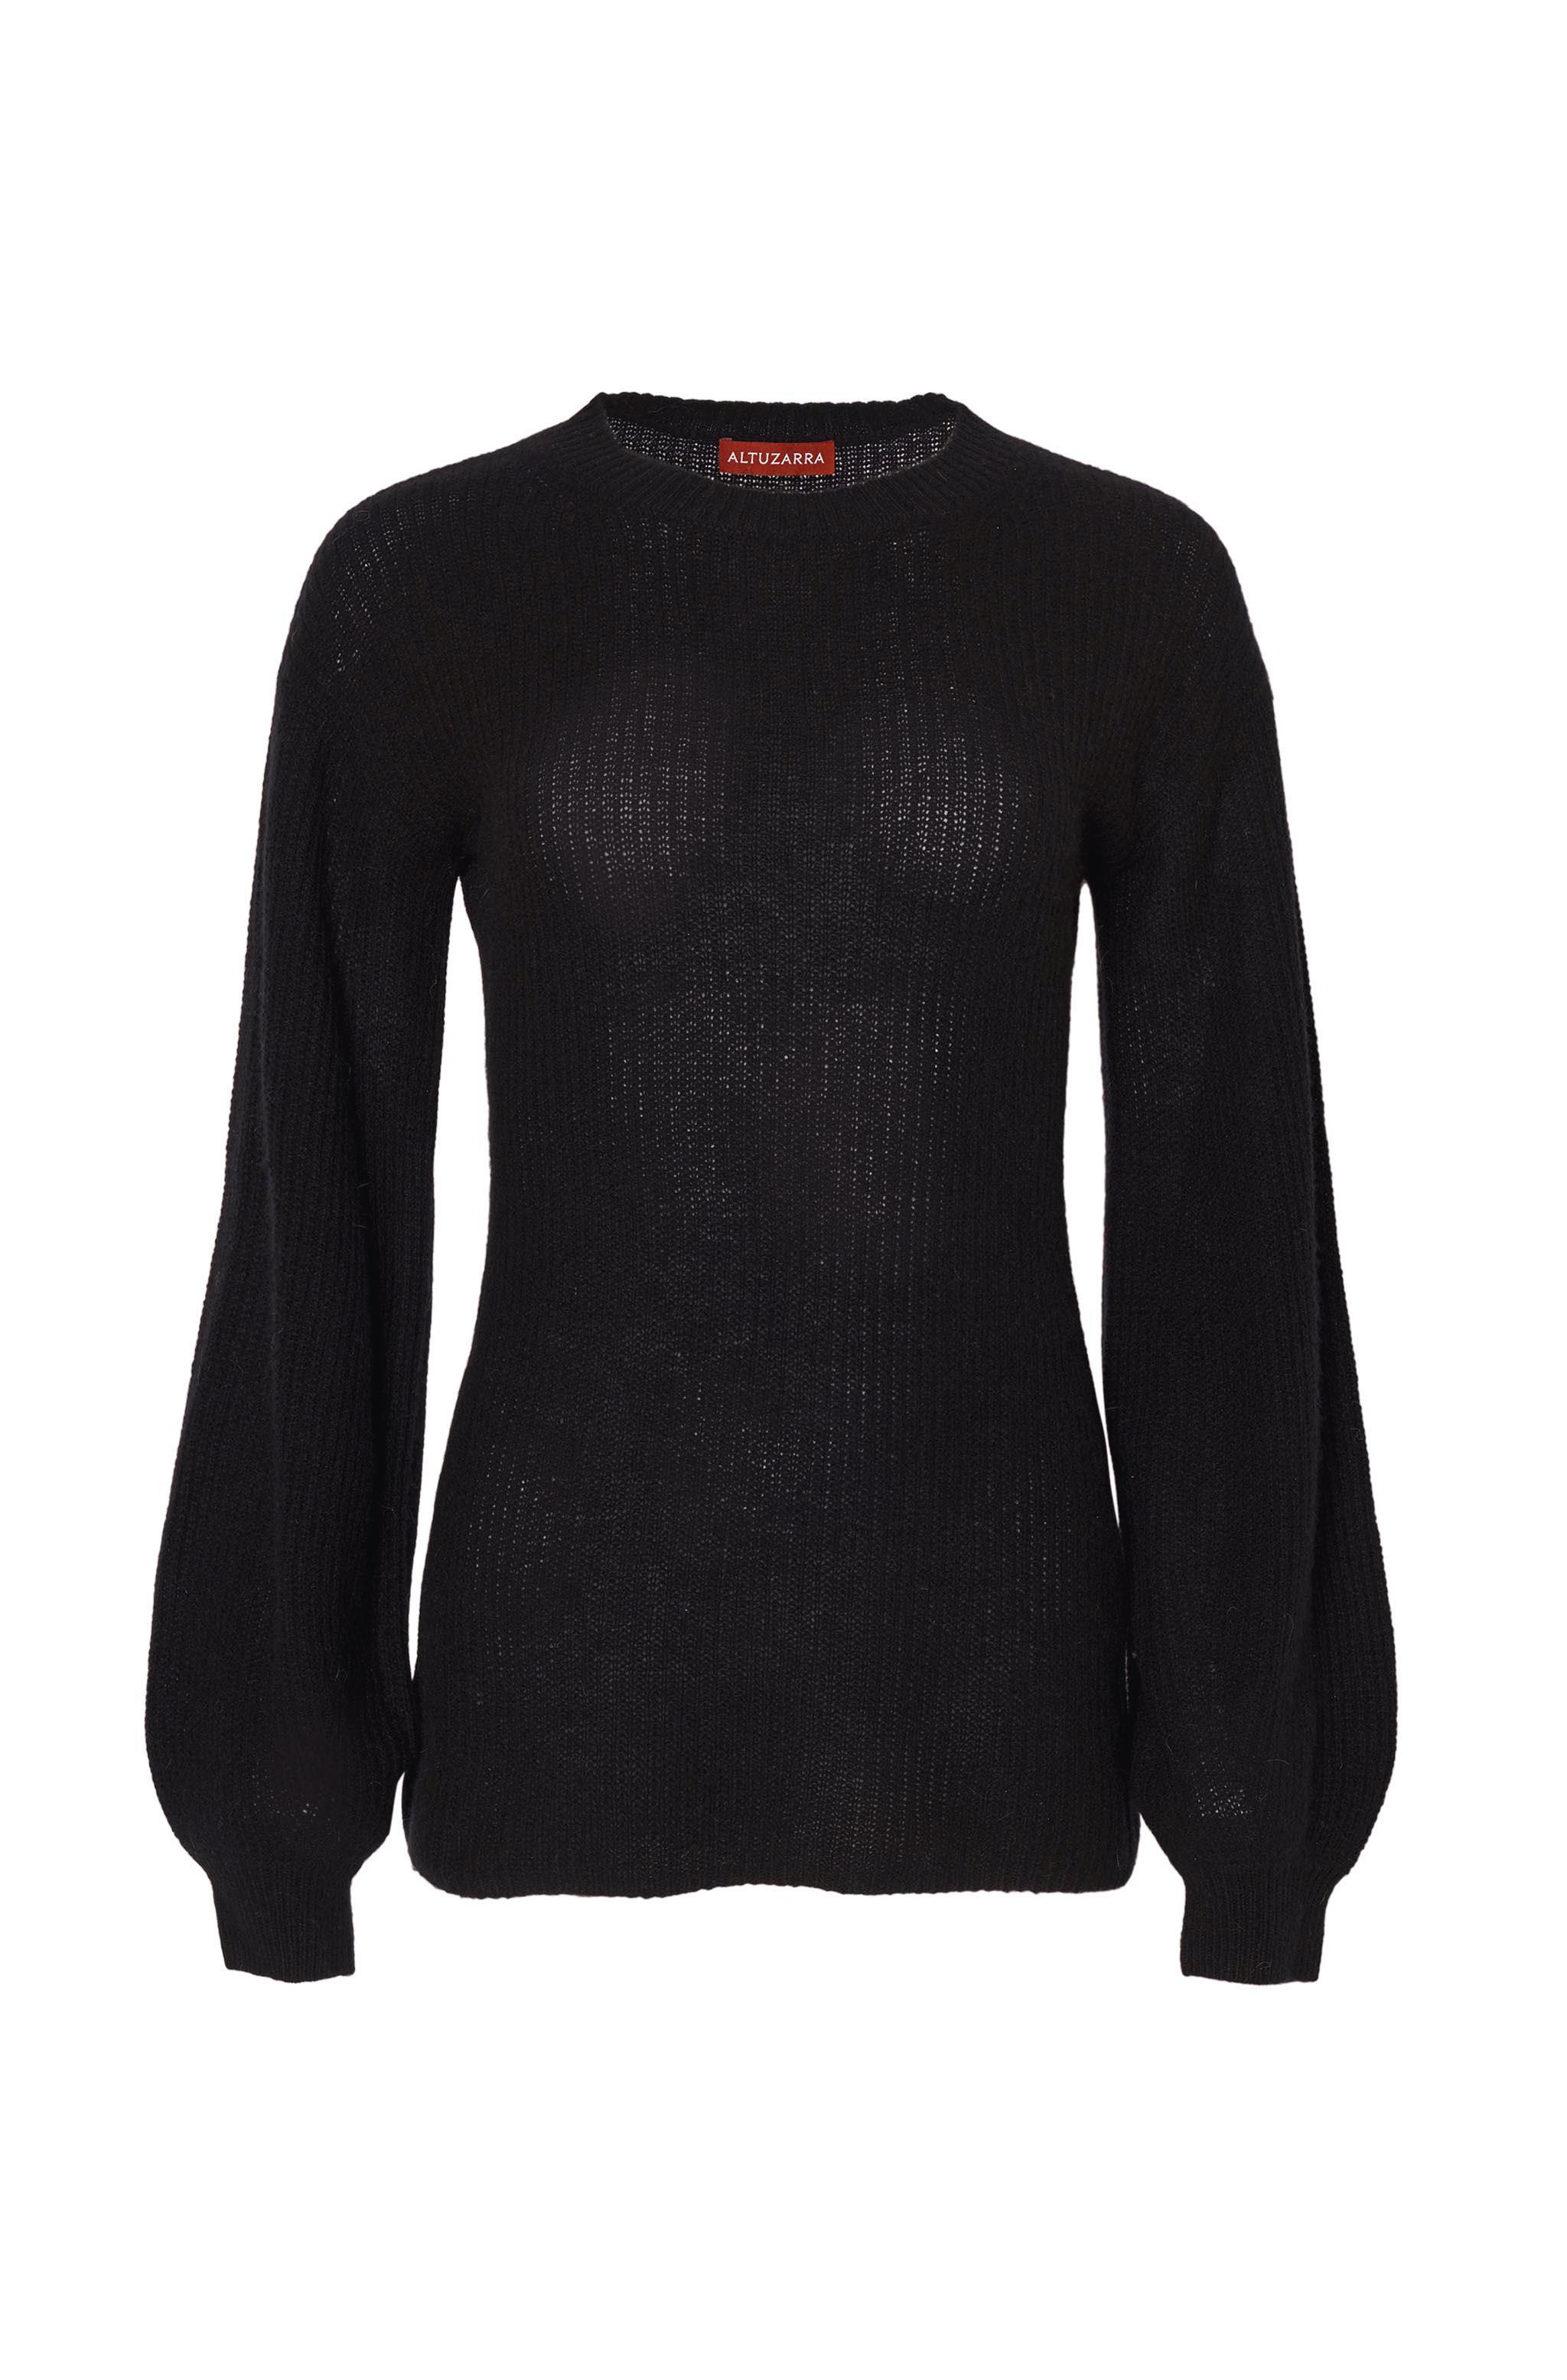 'Brenner' Knit Sweater 4